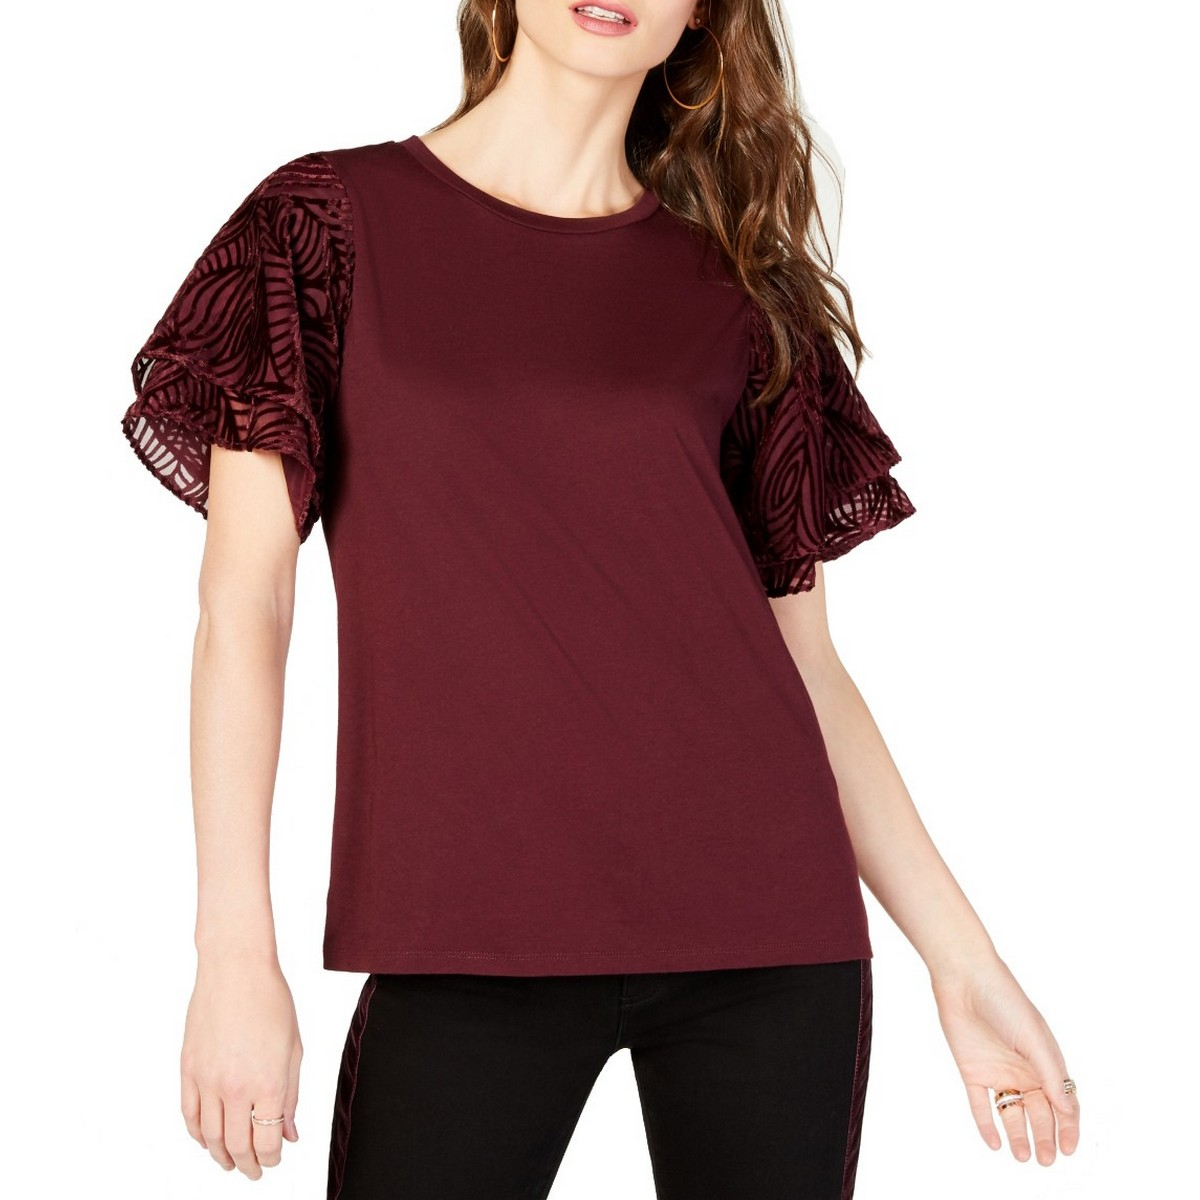 MICHAEL-KORS-NEW-Women-039-s-Velvet-Flutter-Sleeve-Blouse-Shirt-Top-TEDO